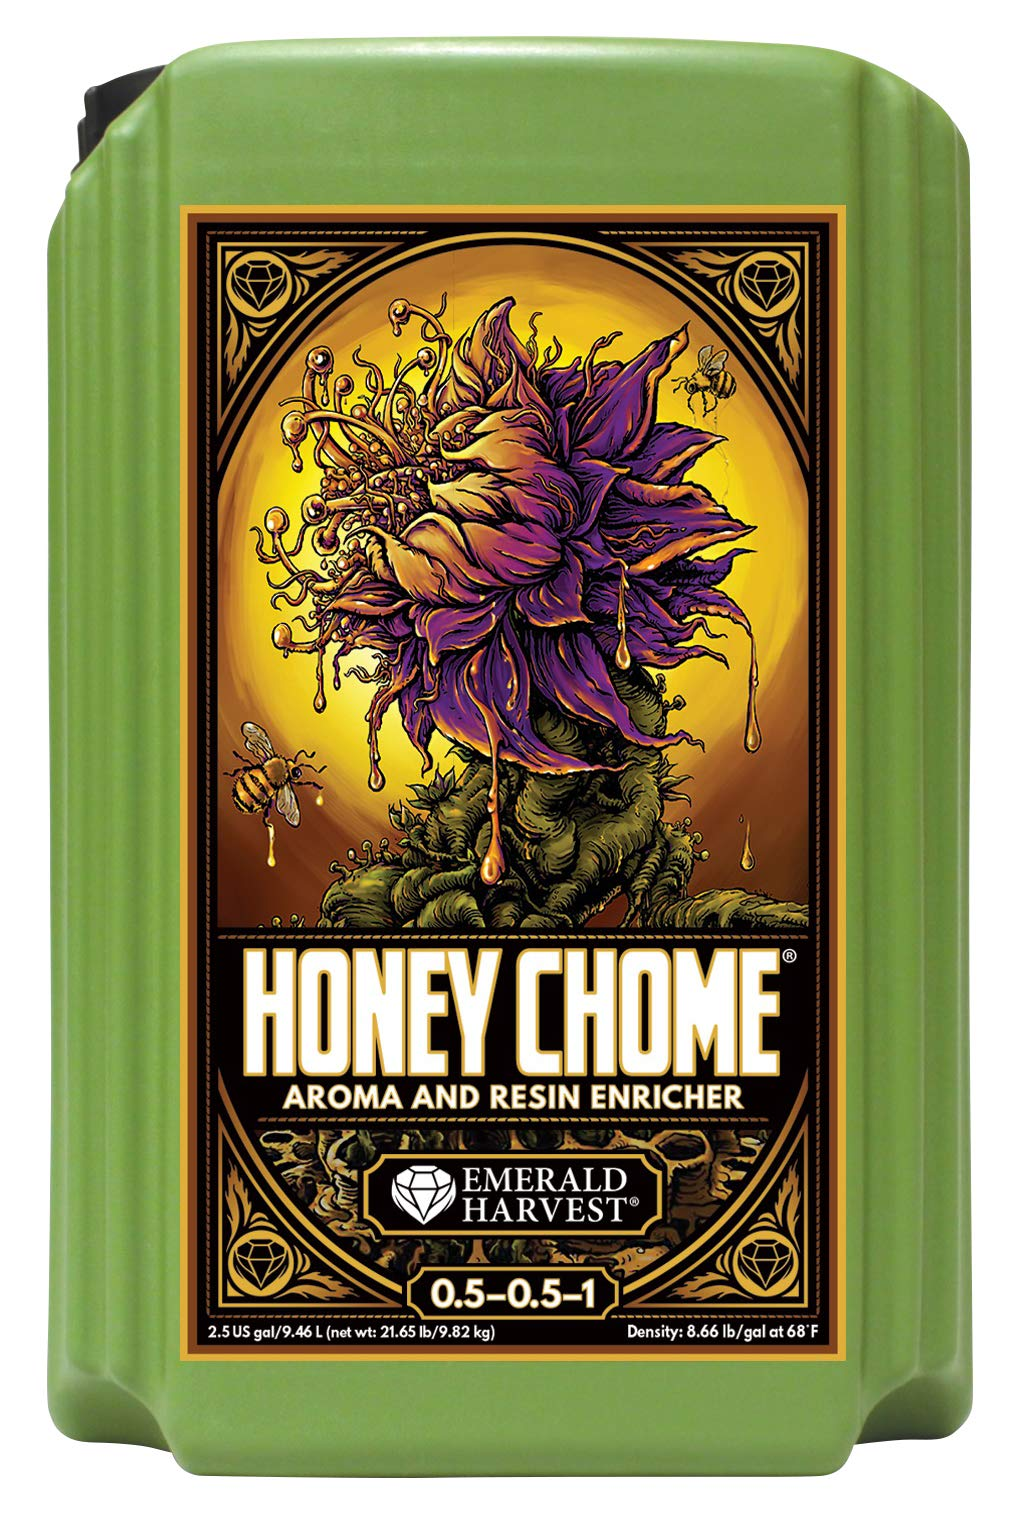 Honey Chome Emerald Harvest 2.5 Gal/9.46 L (2/Cs) by Honey Chome